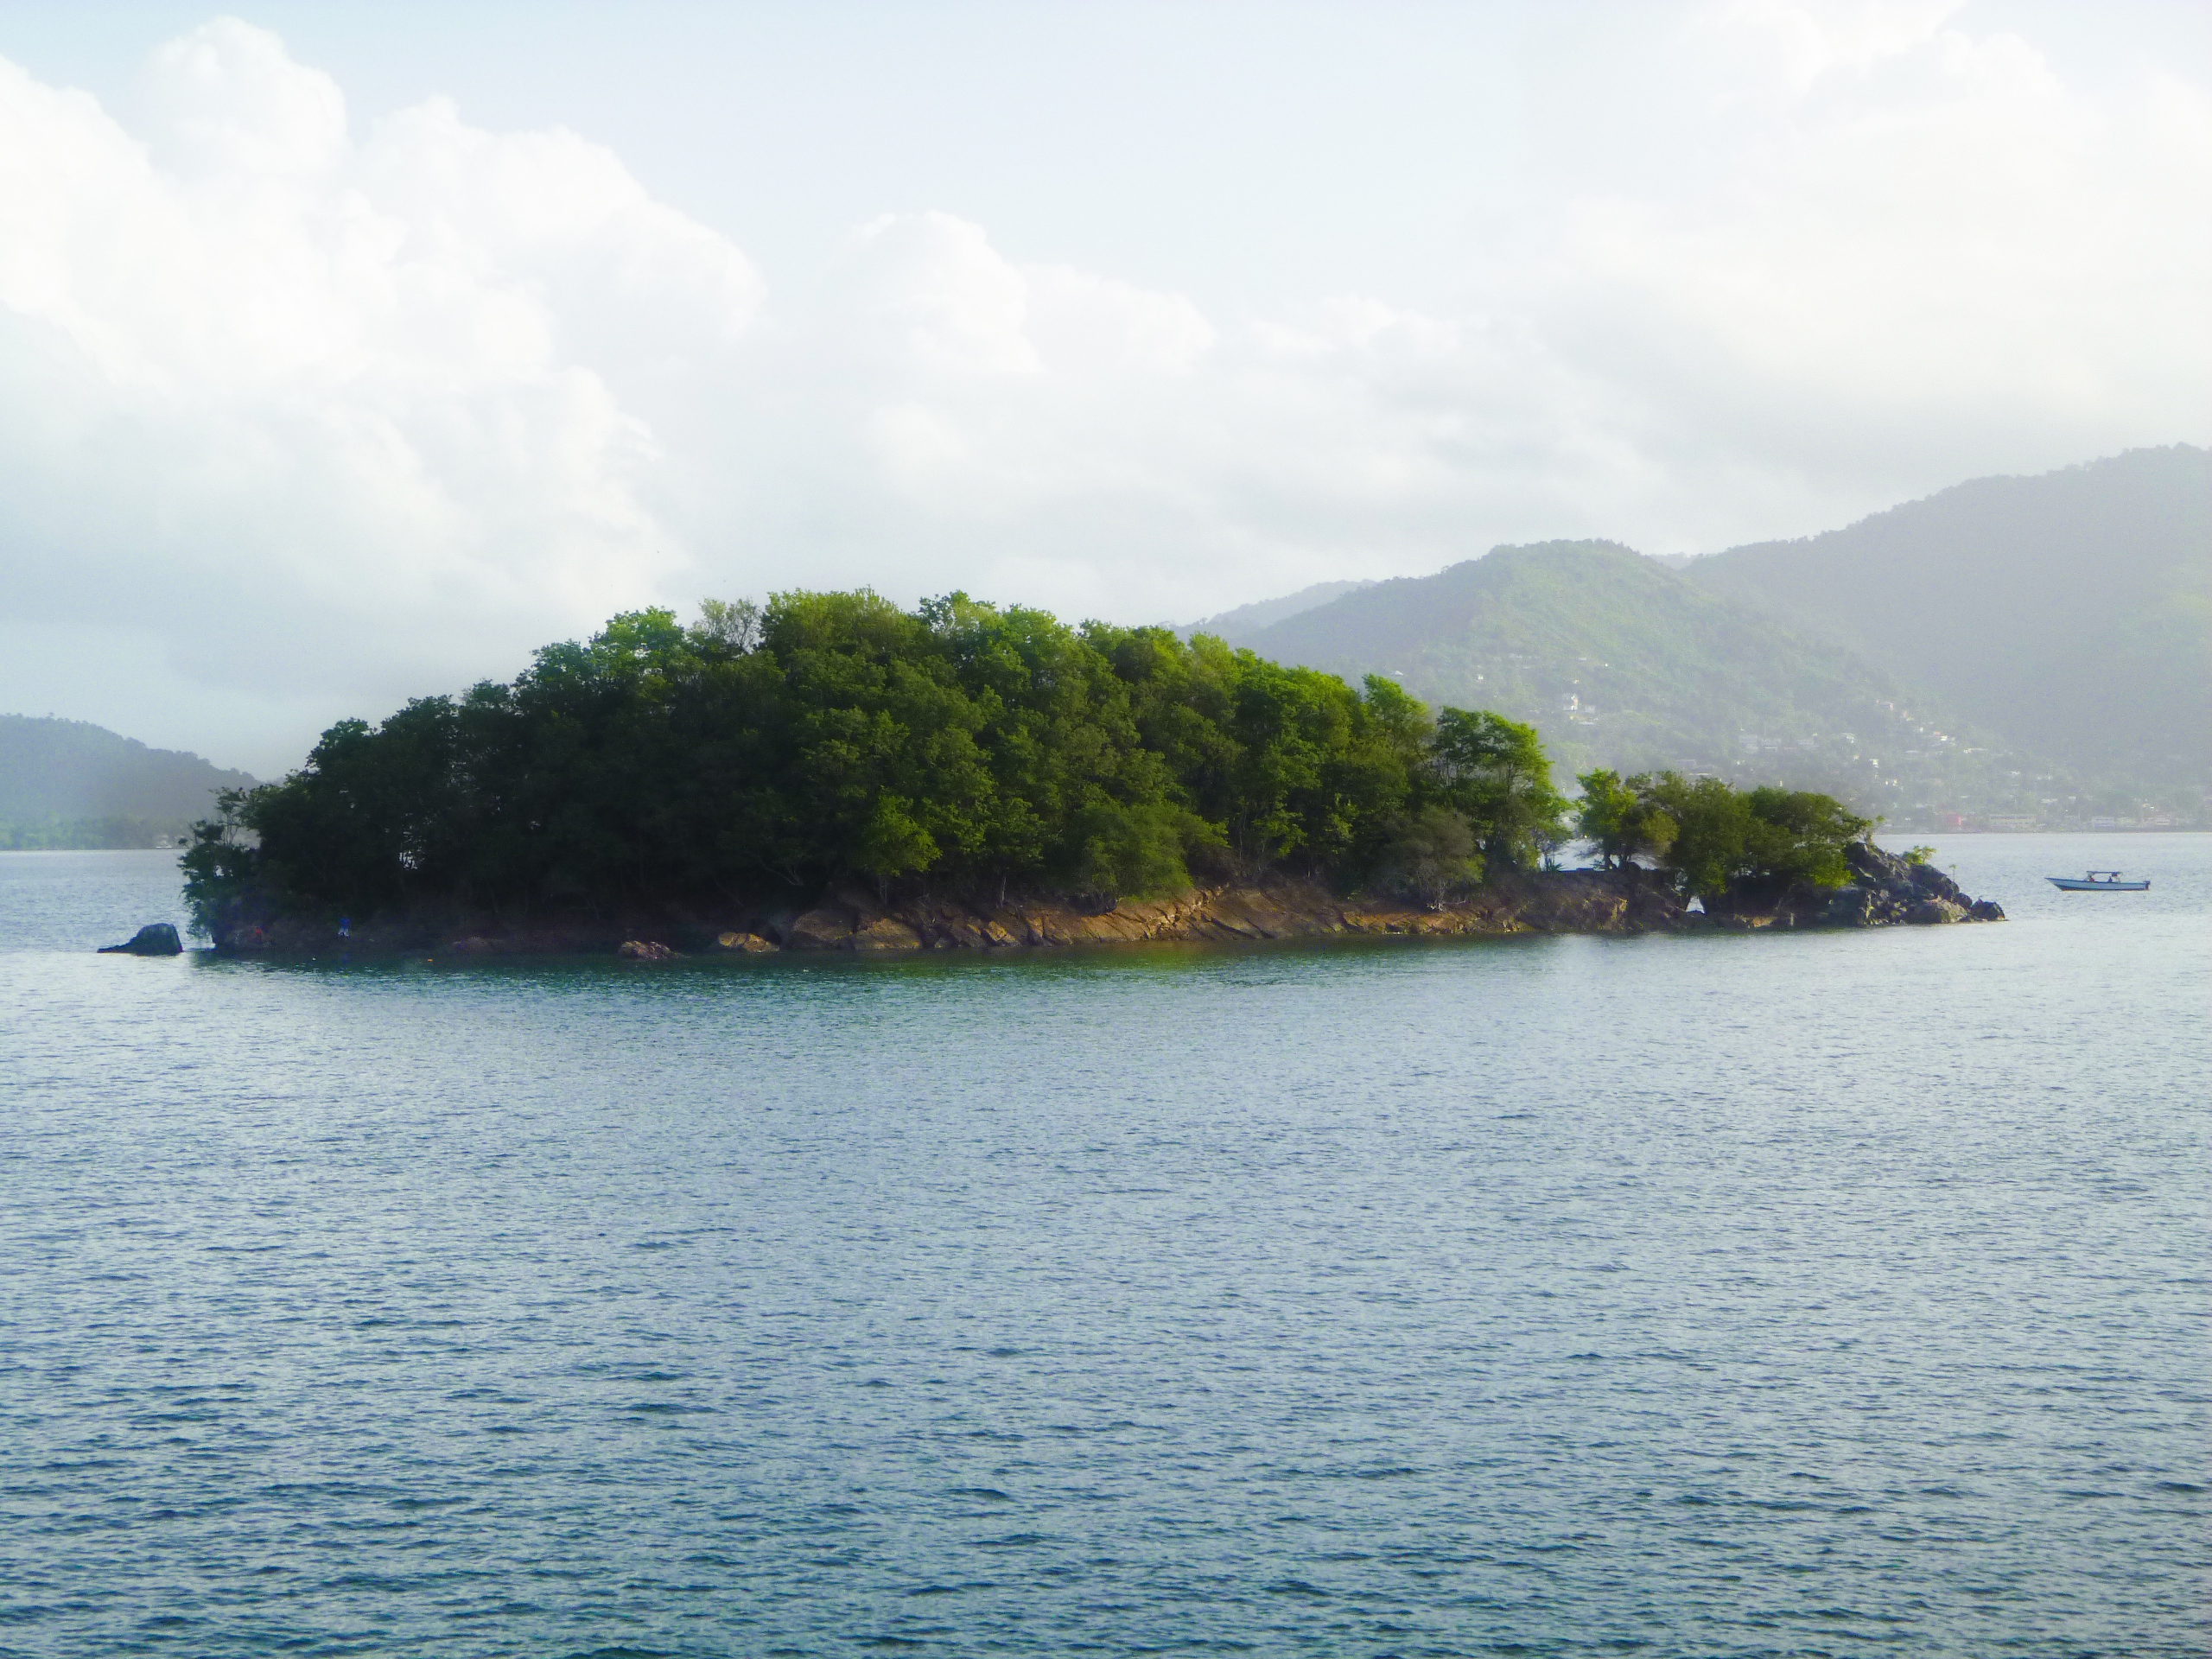 One of the Five Islands, Down the Islands, Trinidad